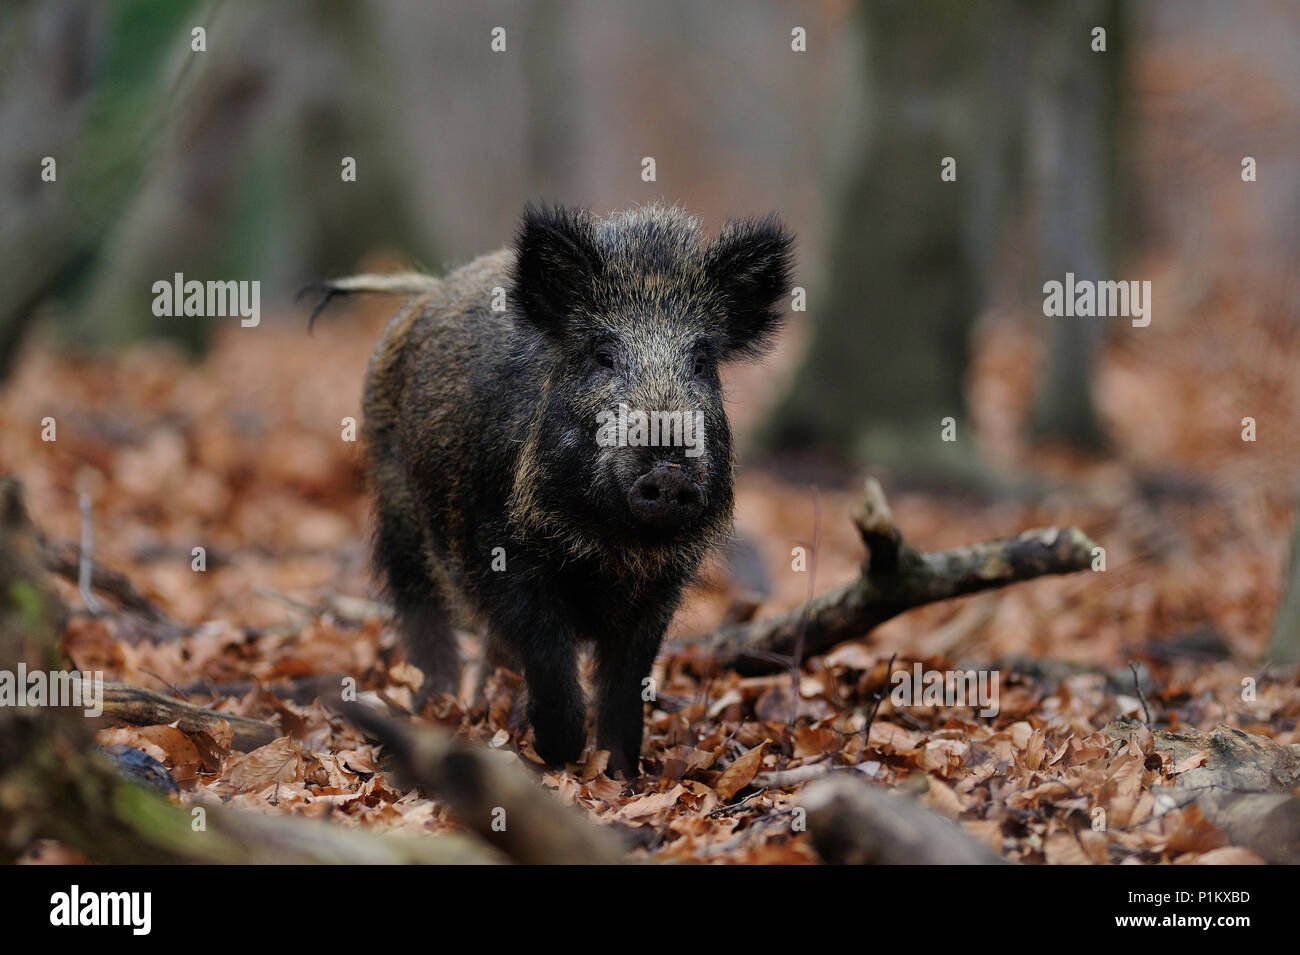 Wild boar in the forest, (sus scrofa) - Stock Image